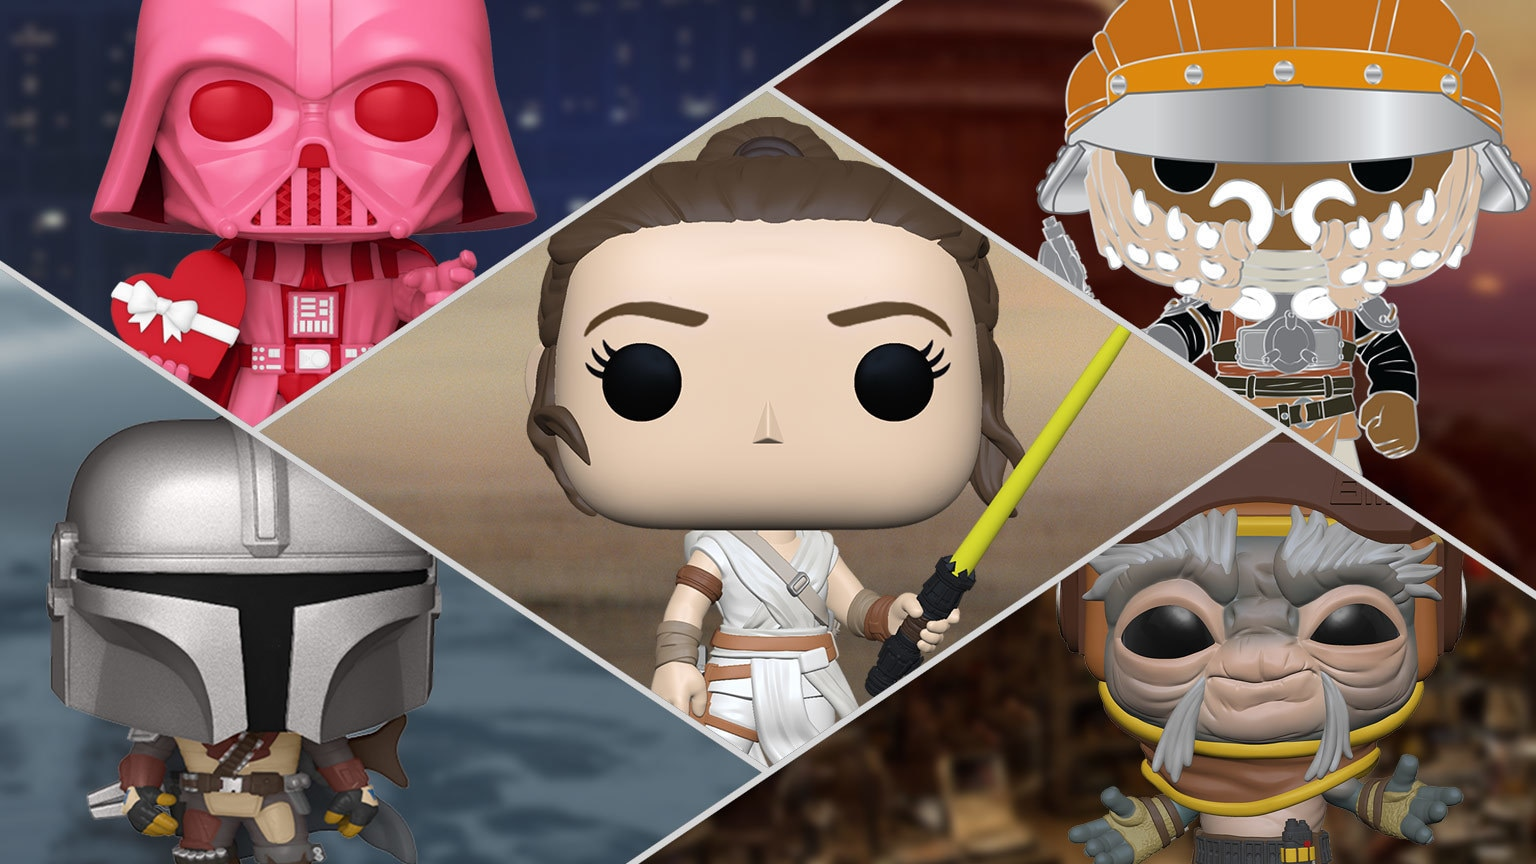 UPDATED: Get Your First Look at All the Star Wars Funko Fair Reveals